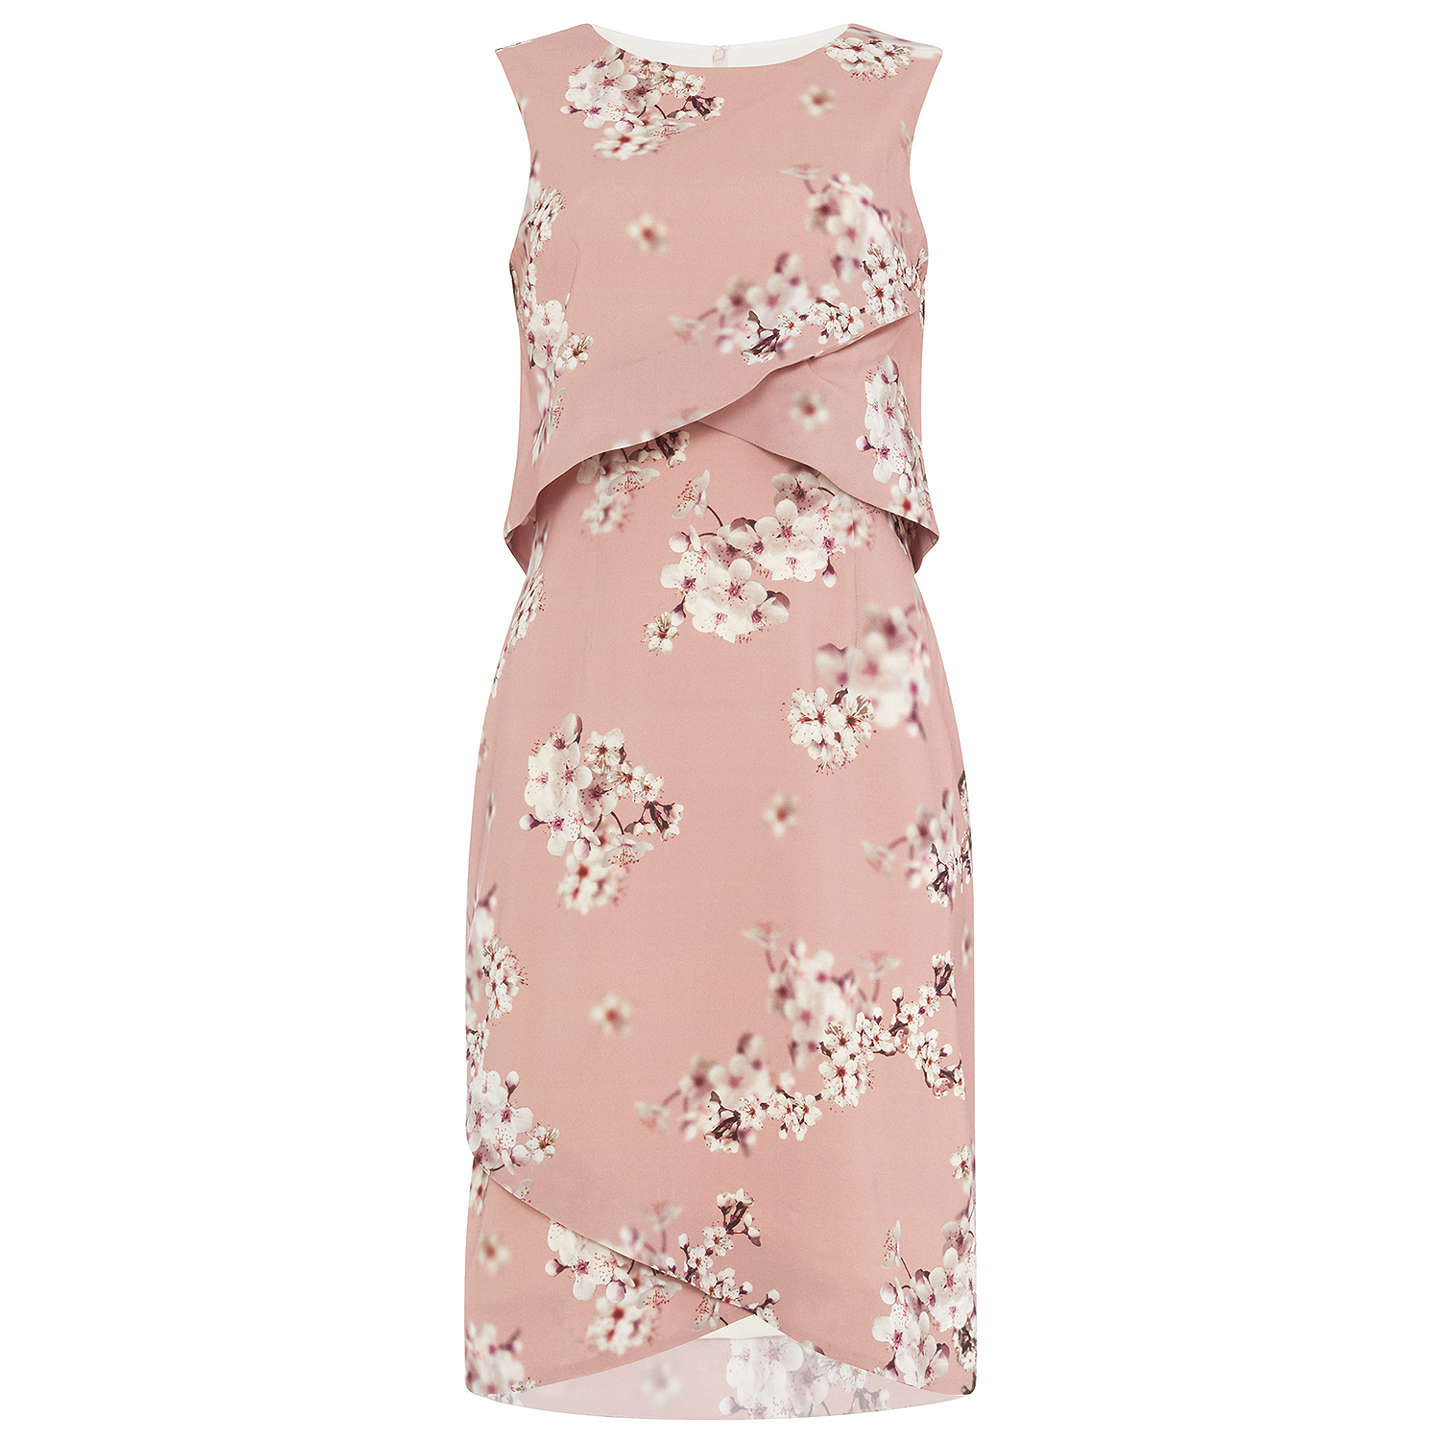 BuyPhase Eight Flo Blossom Print Dress, Opal, 16 Online at johnlewis.com